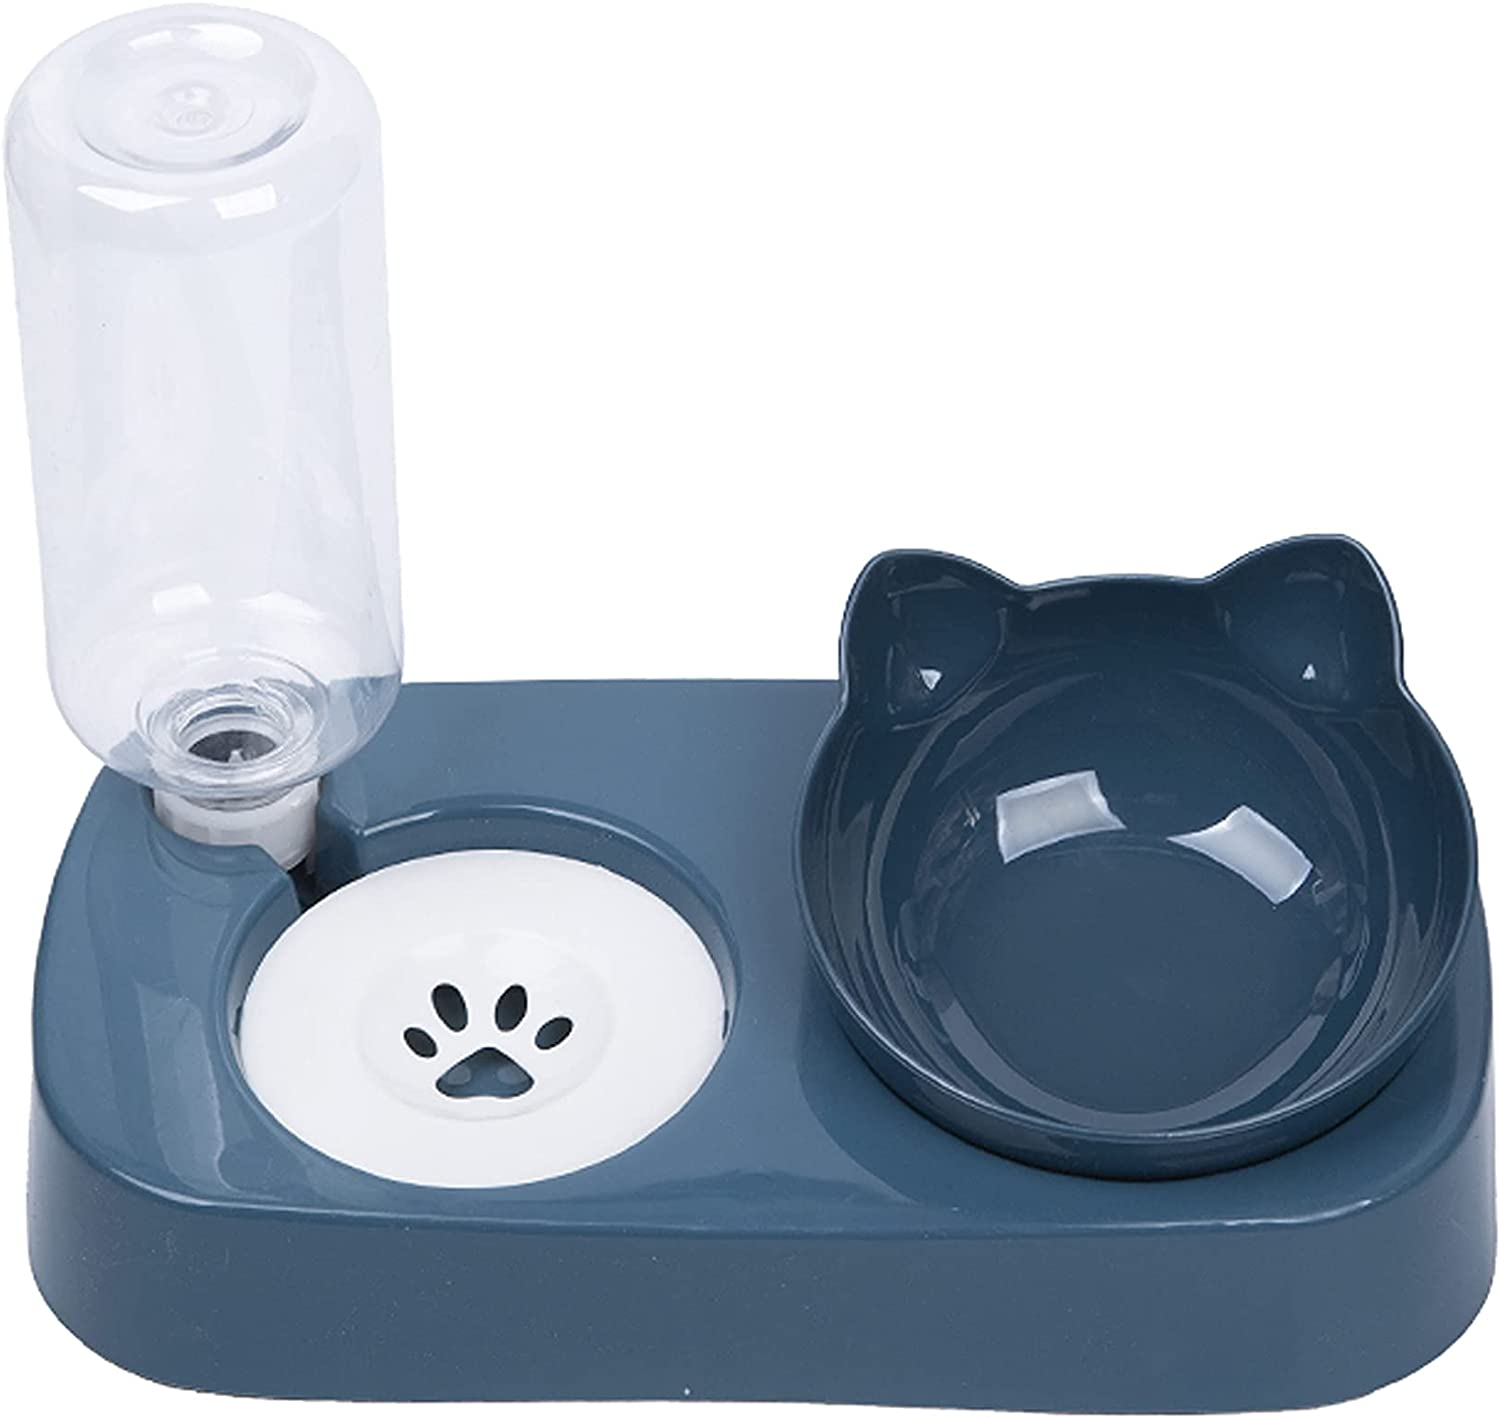 Cat Bowl.Double Bowl Design.Tilted Elevated cat Food Bowls,Automatic Drinking Bowl.Easy to Assemble and disassemble.Suitable for Cats / Small Dogs.(Blue)